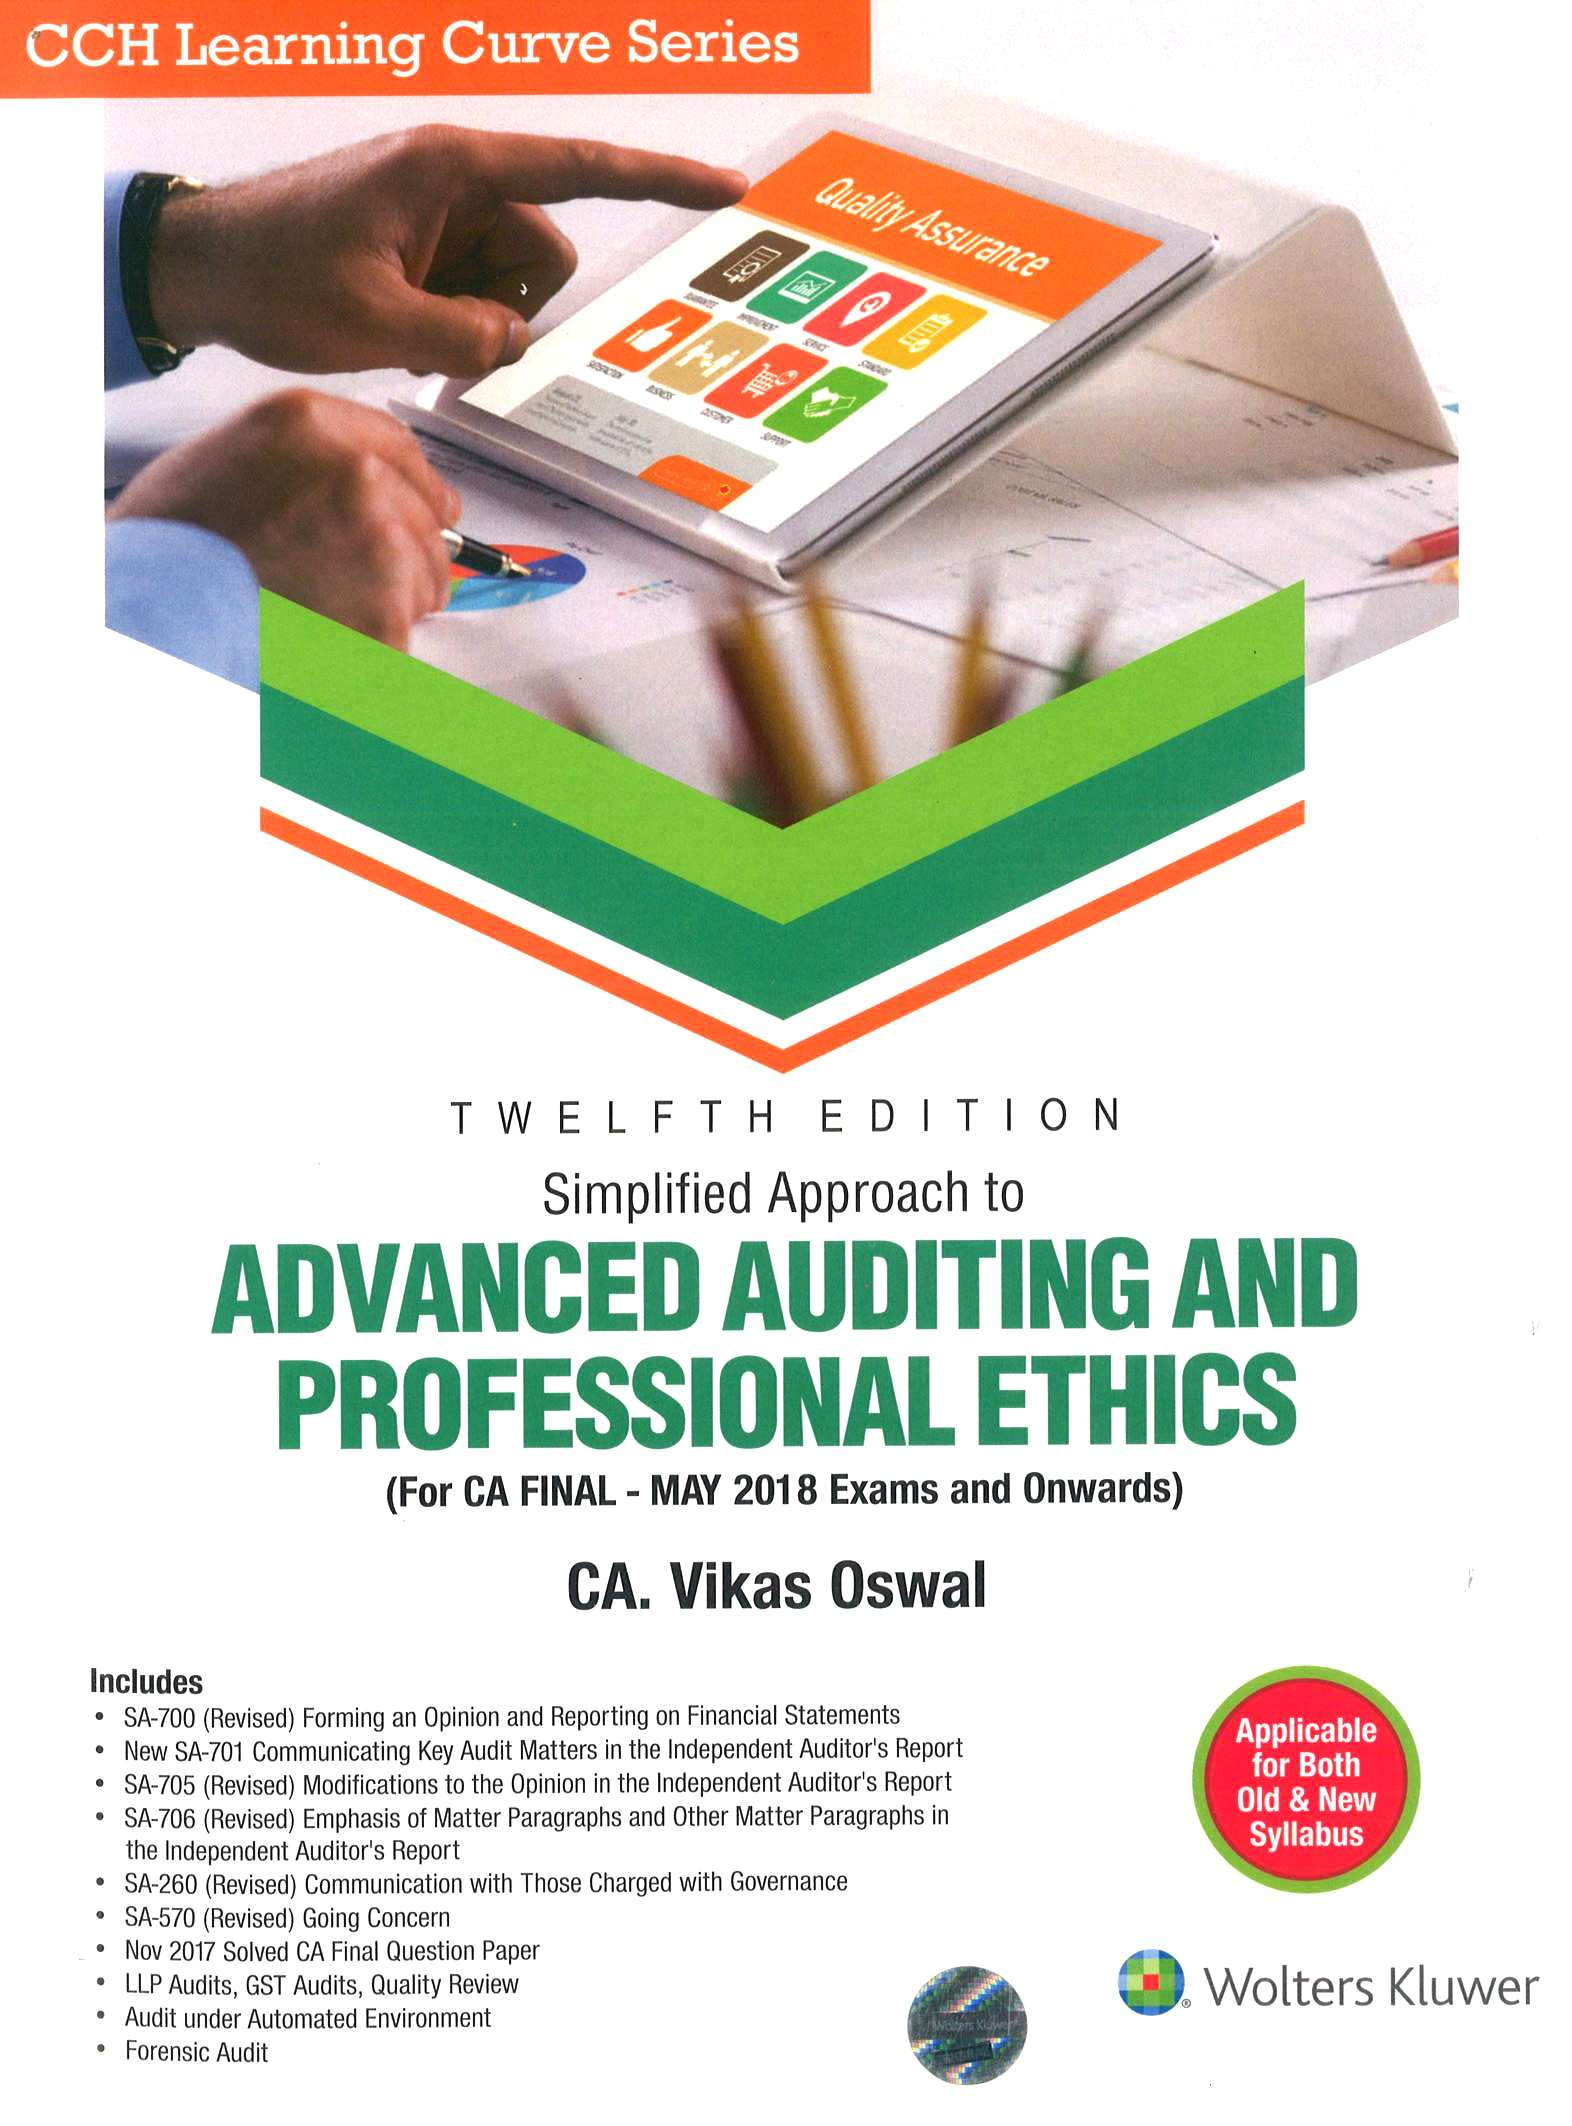 CCH Advanced Auditing and Professional Ethics Both Old & New Syllabus for CA Final By Vikas Oswal Applicable for May 2018 Exam 	 12th Edition December 2017